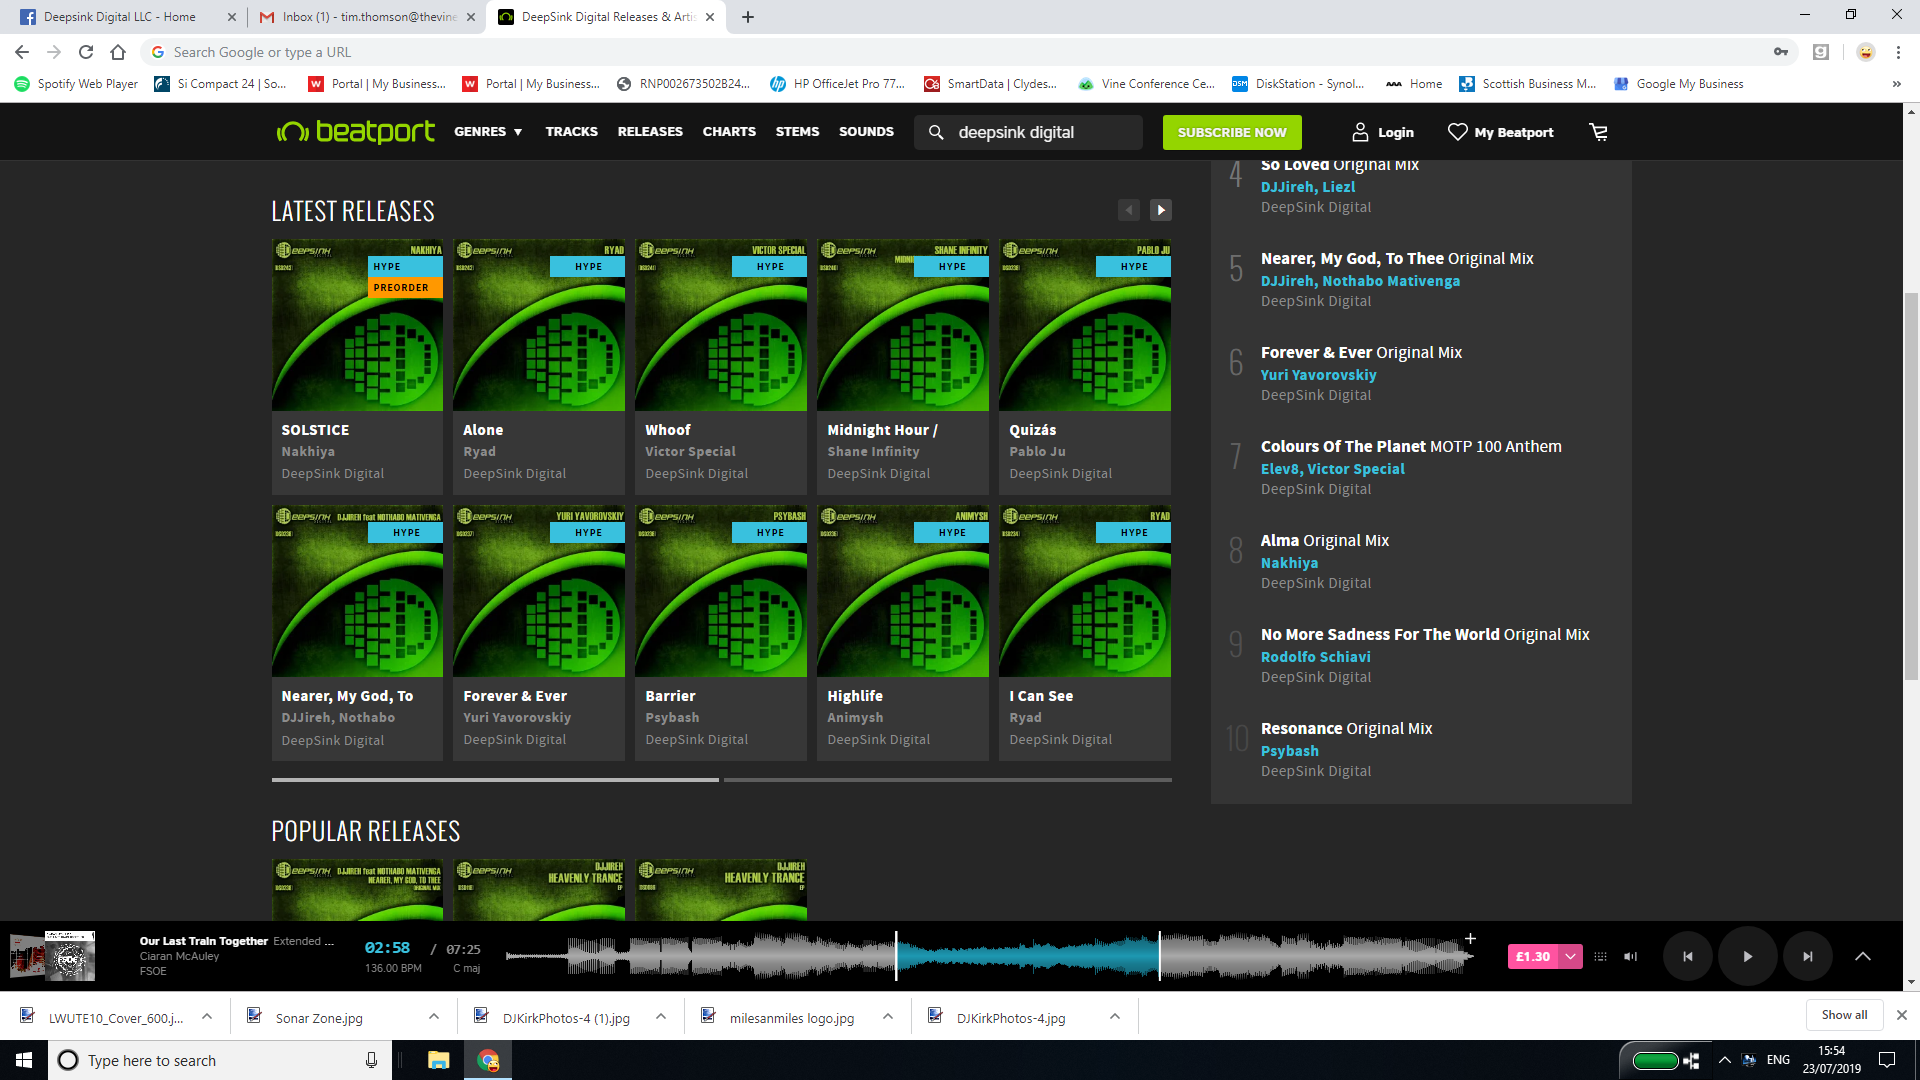 Deepsink Digital HYPE on Beatport